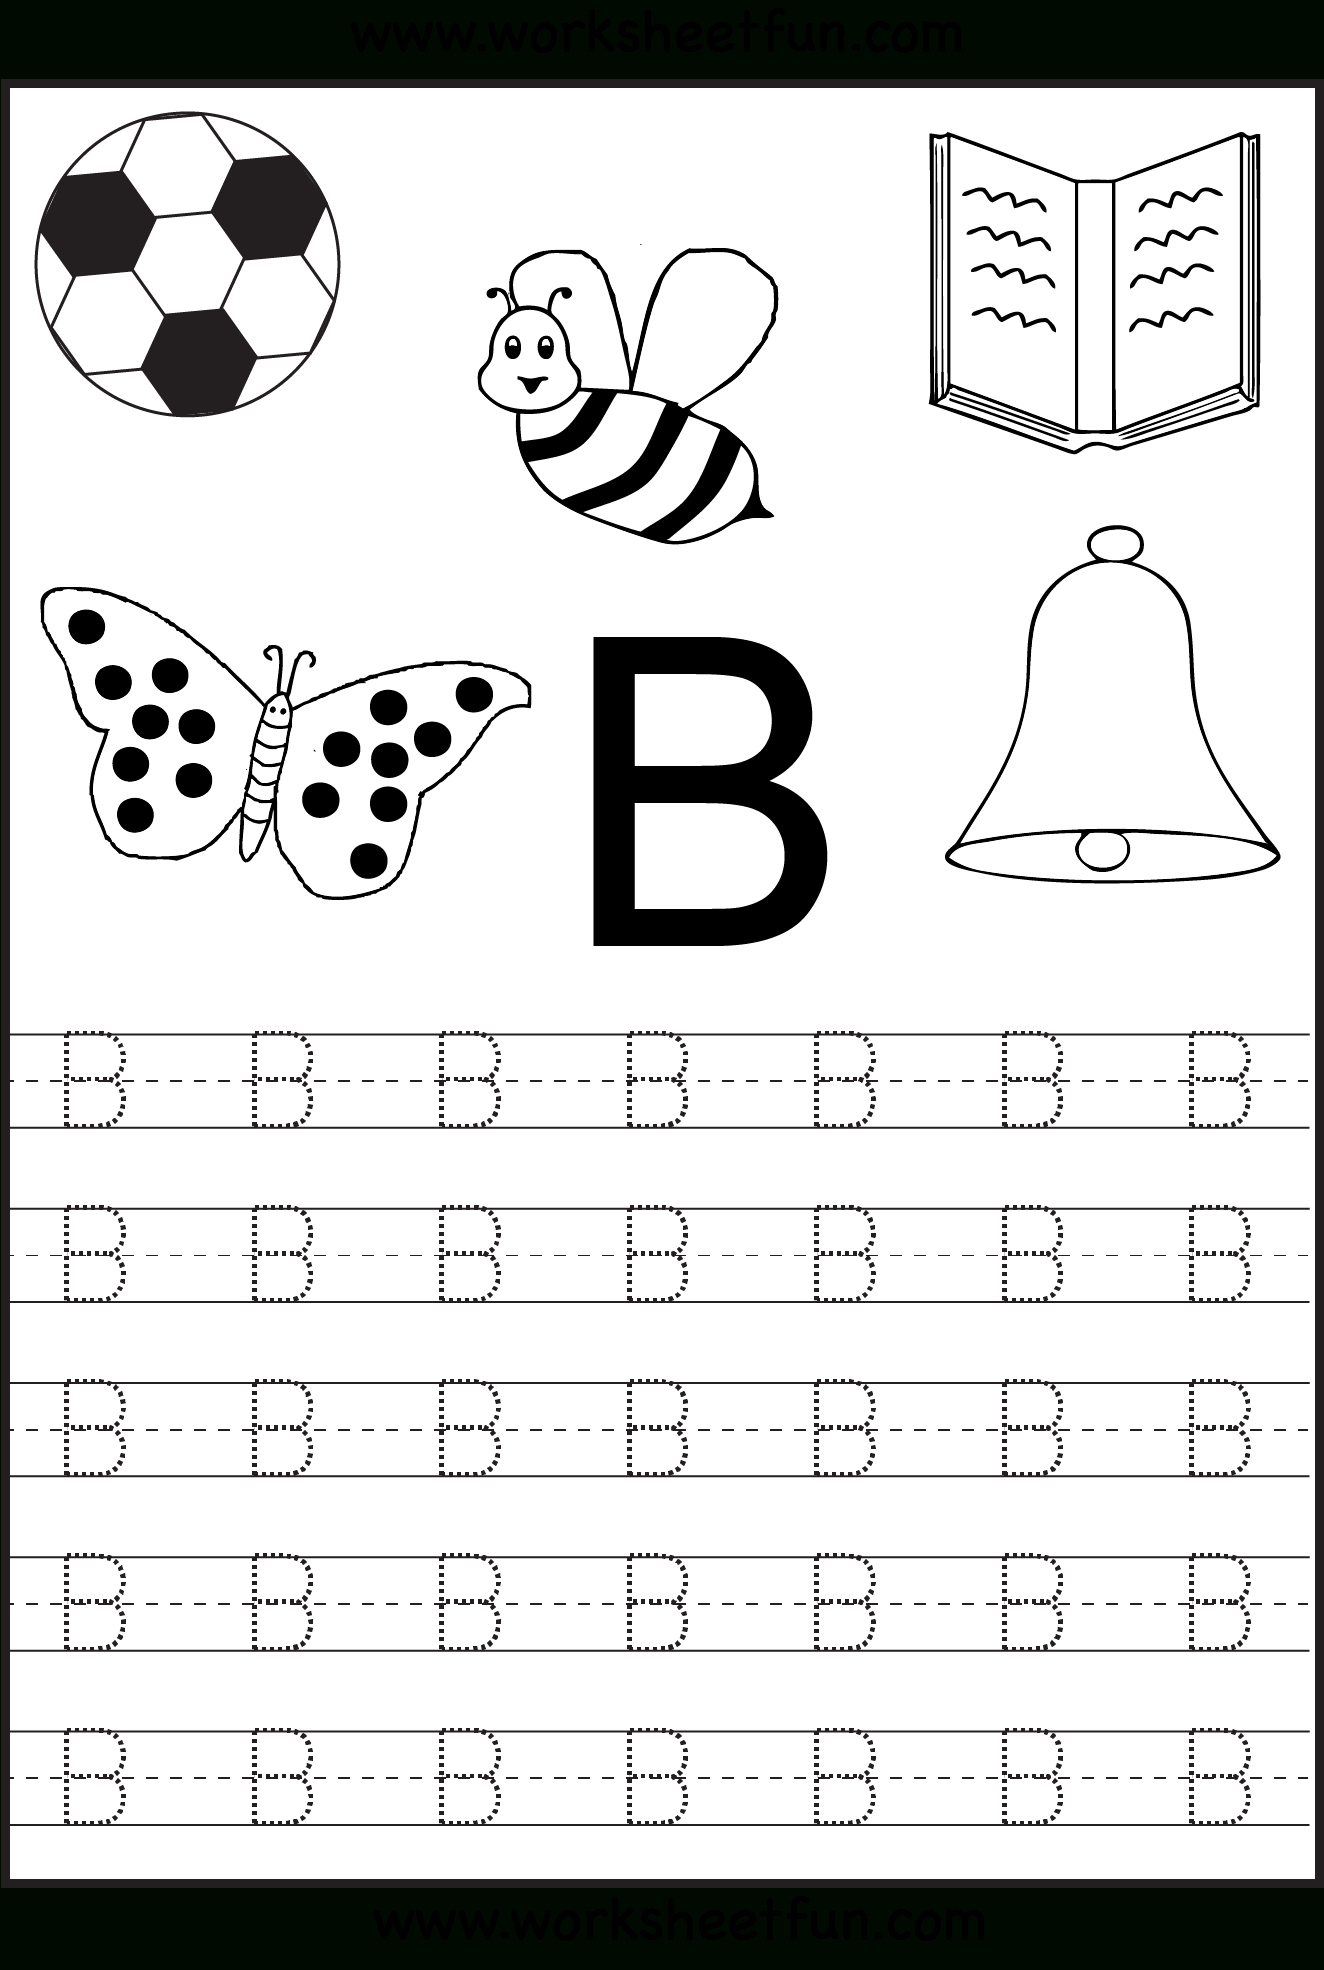 Free Printable Letter Tracing Worksheets For Kindergarten pertaining to Tracing Letter A Worksheets For Kindergarten